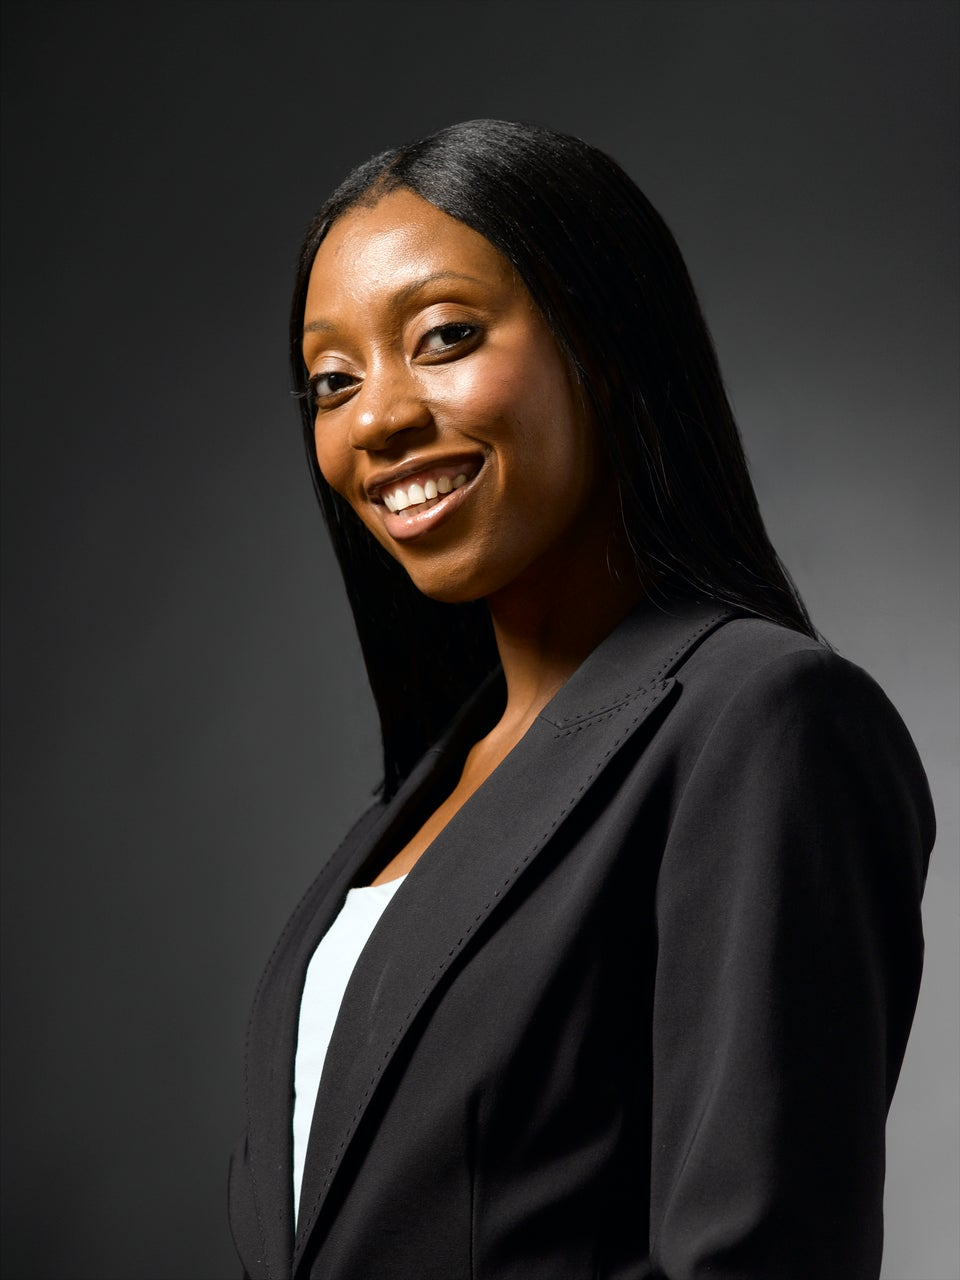 Tanisha's Tips: How Far Would You Go for a Promotion?